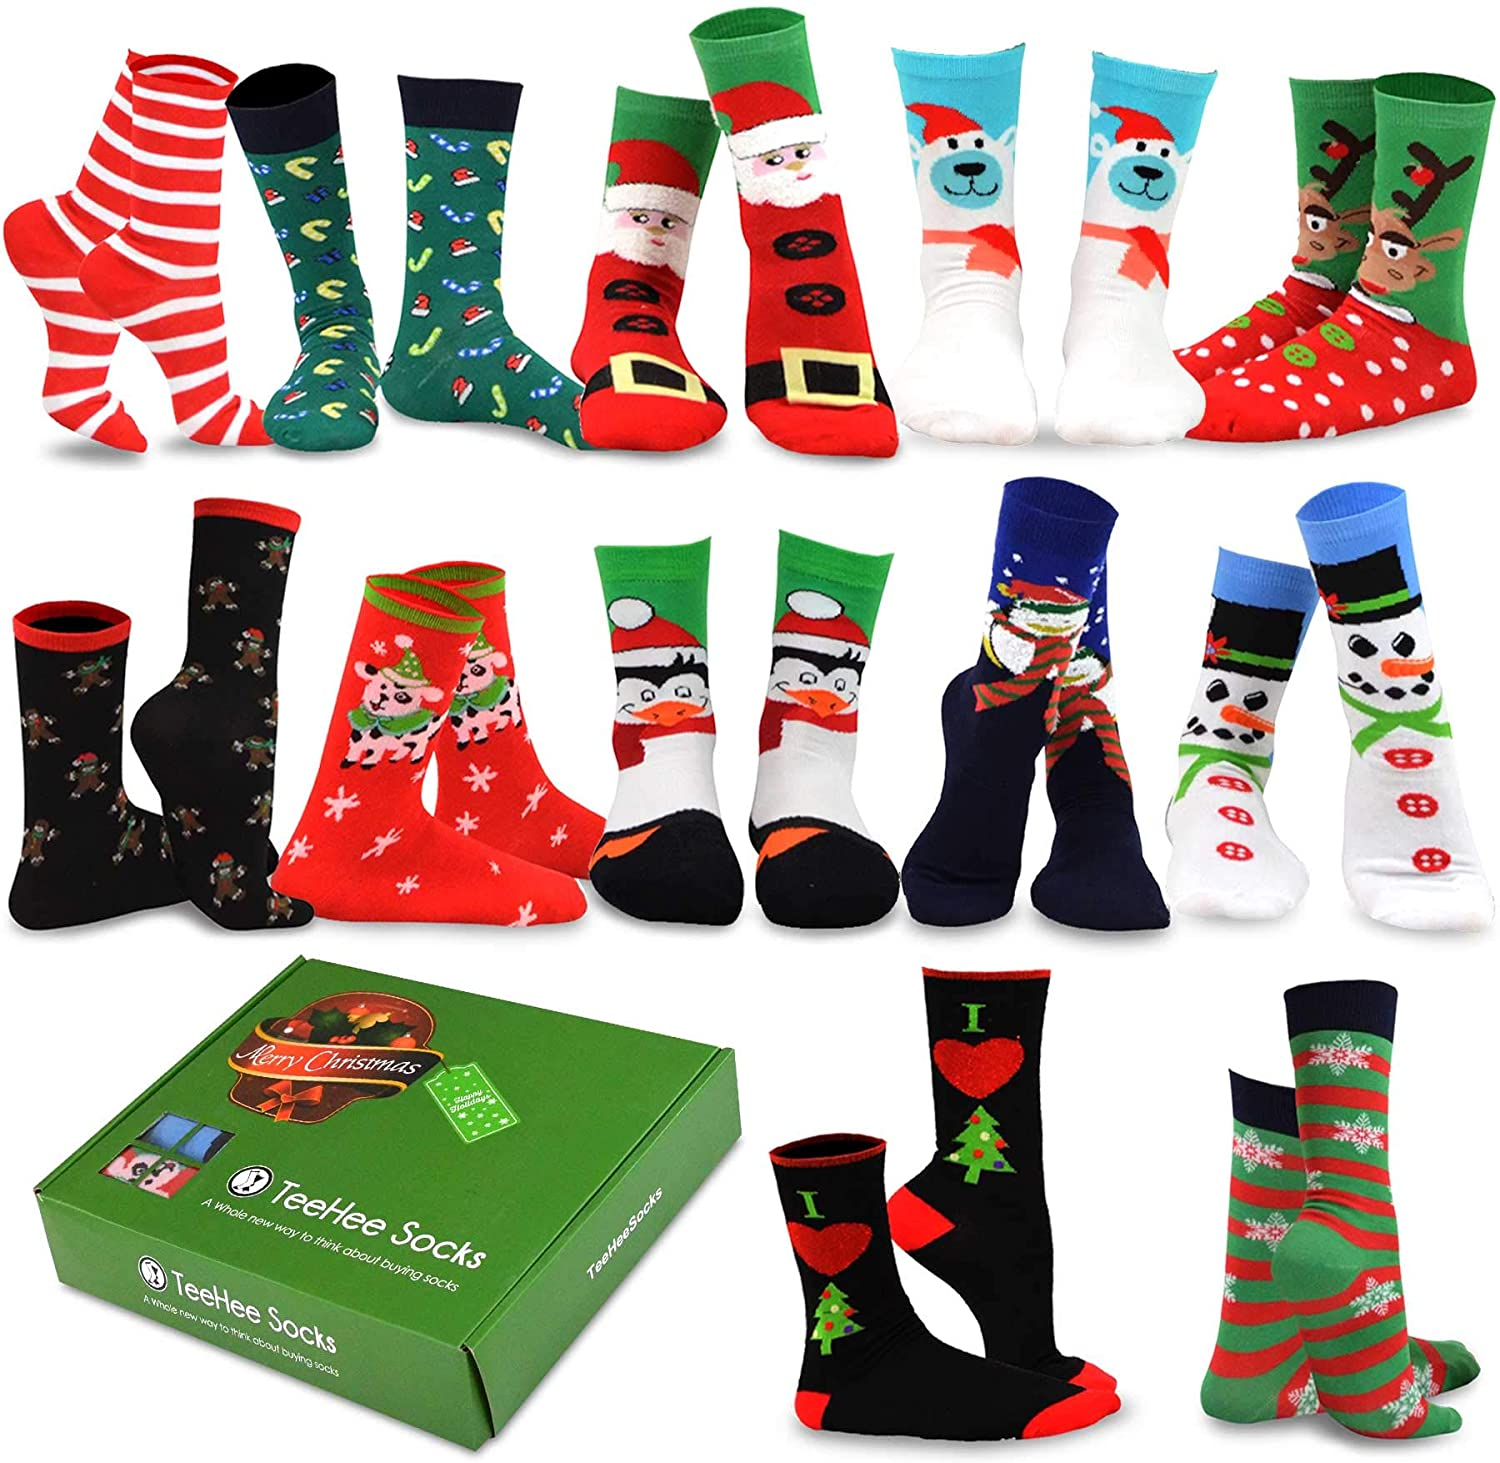 TeeHee Seasonal Holiday Socks, 12-Pair with Gift Box